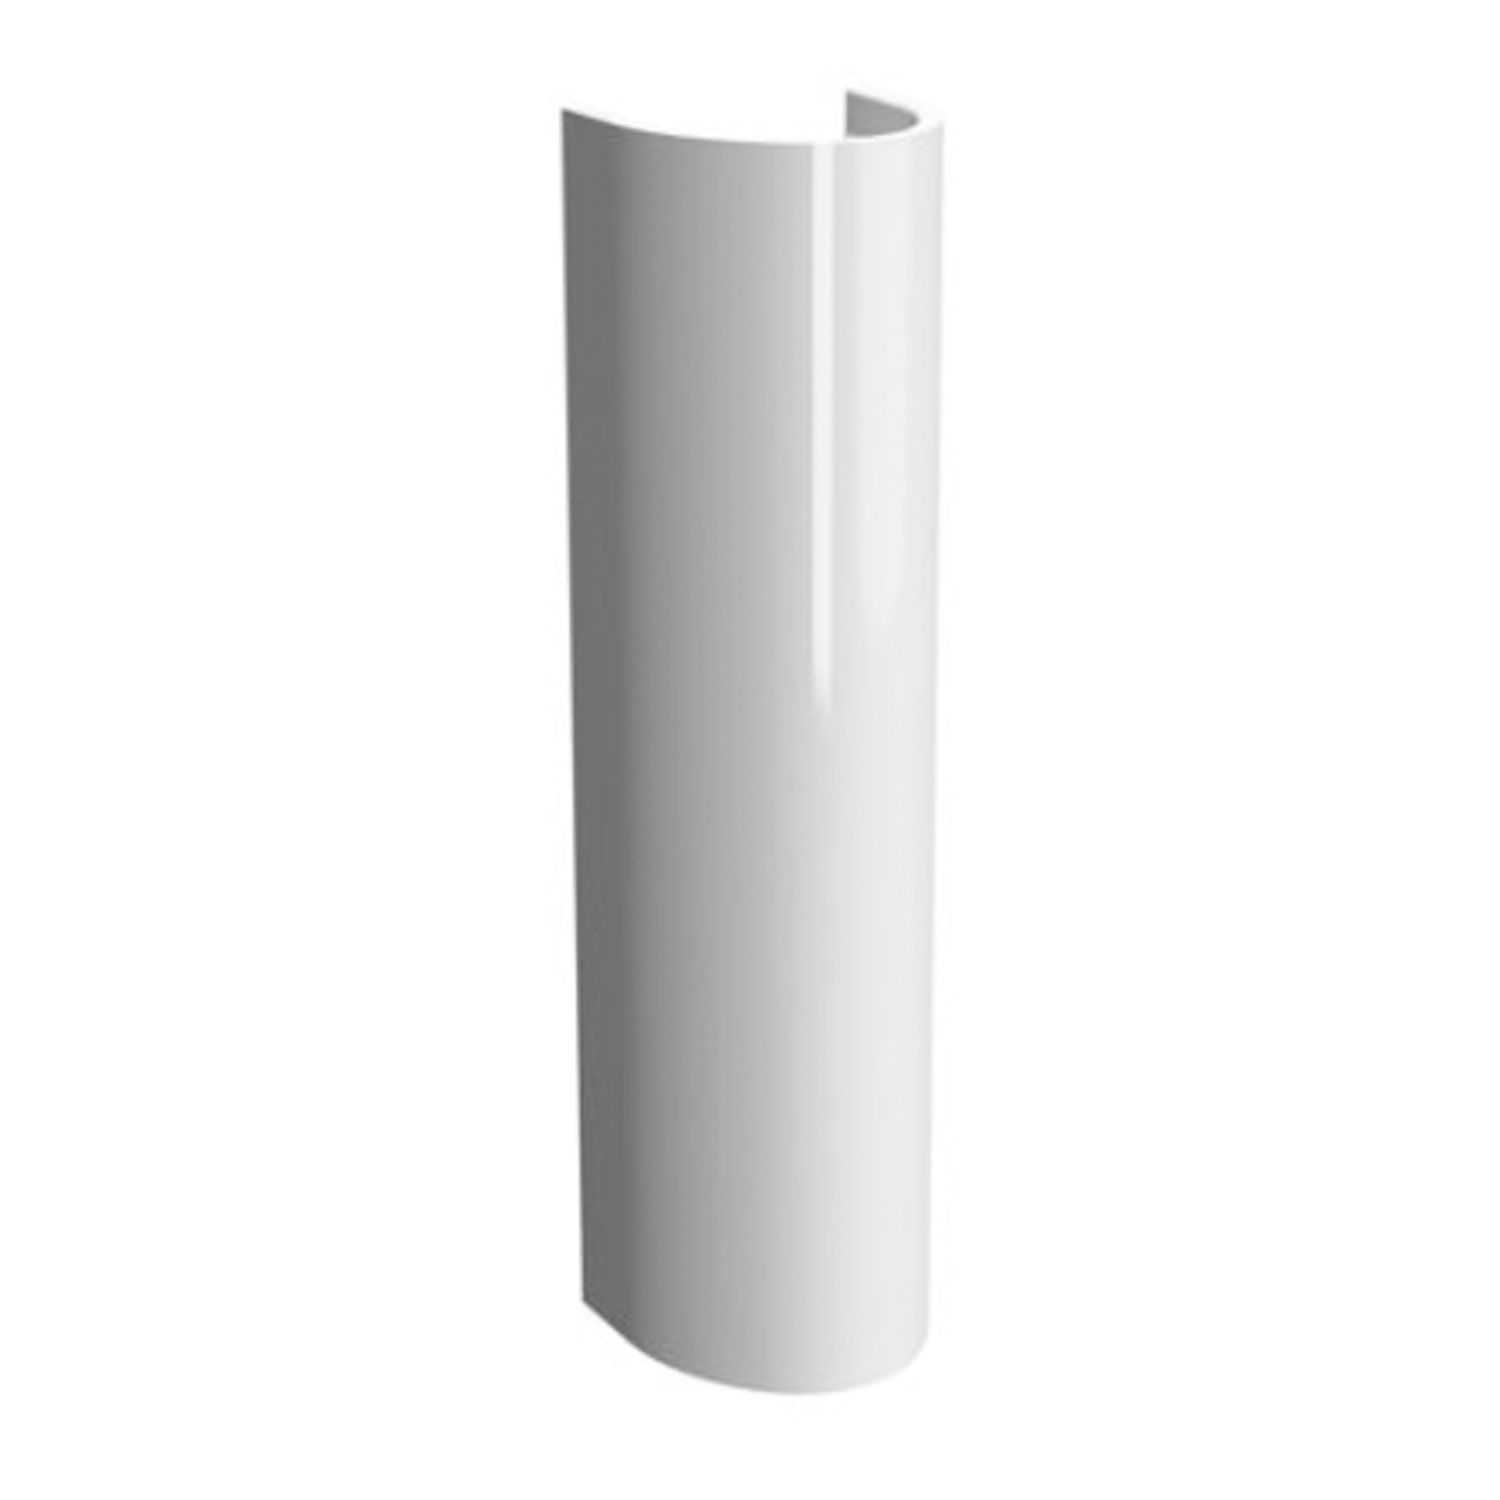 Vitra S50 Round Basin & Full Pedestal 550mm Wide1 Tap Hole-0